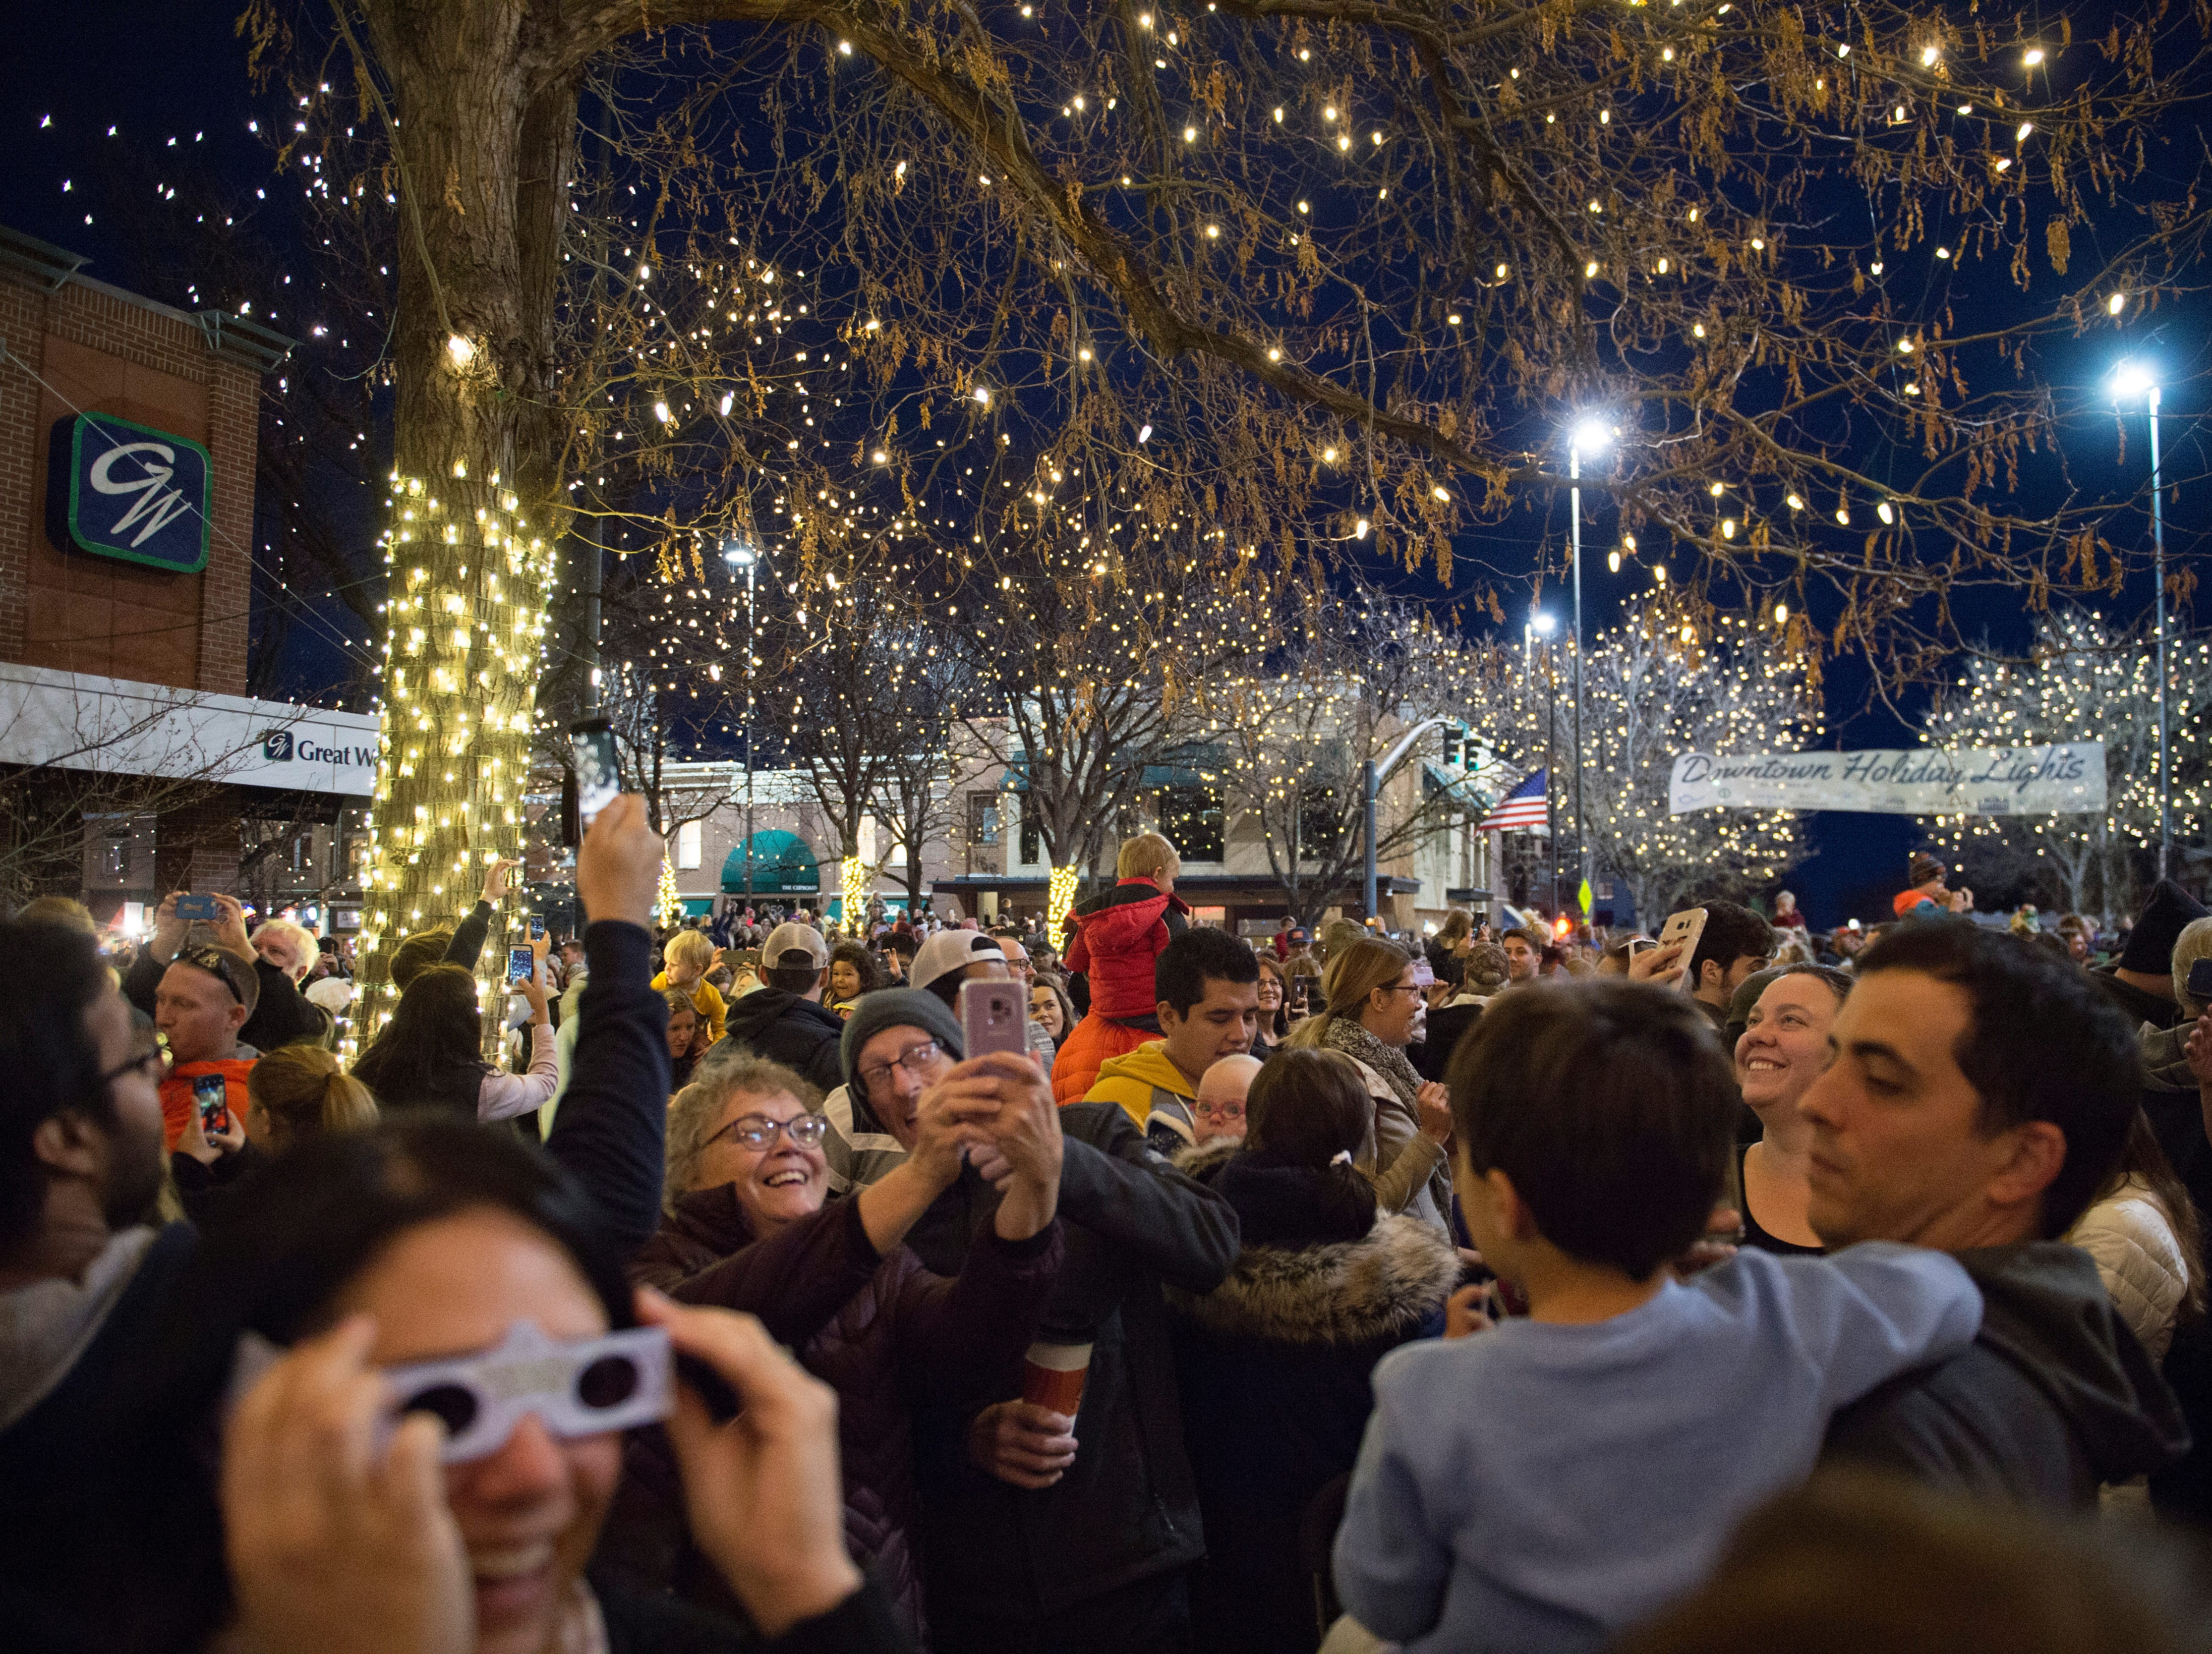 People take photos of the holiday lights in Oak Street Plaza after they turned on in Old Town on Friday, November 2, 2018. The lights will illuminate Old Town until Feb. 14.